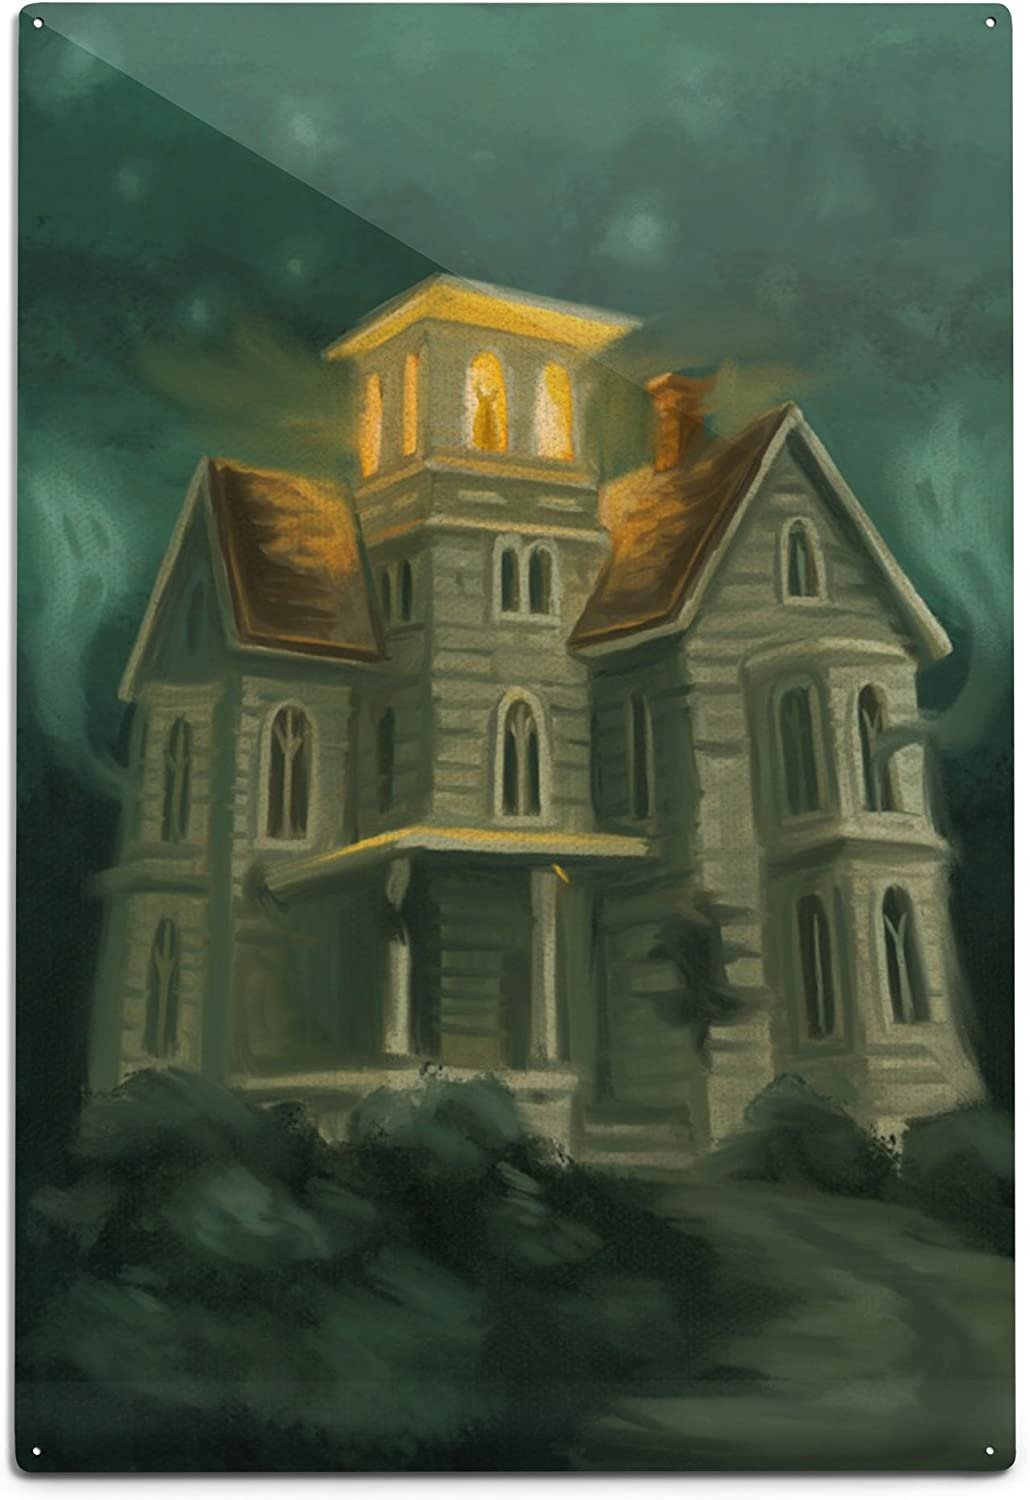 Lantern Press Haunted House Halloween Alumi Bargain sale Oil 12x18 Painting Selling and selling